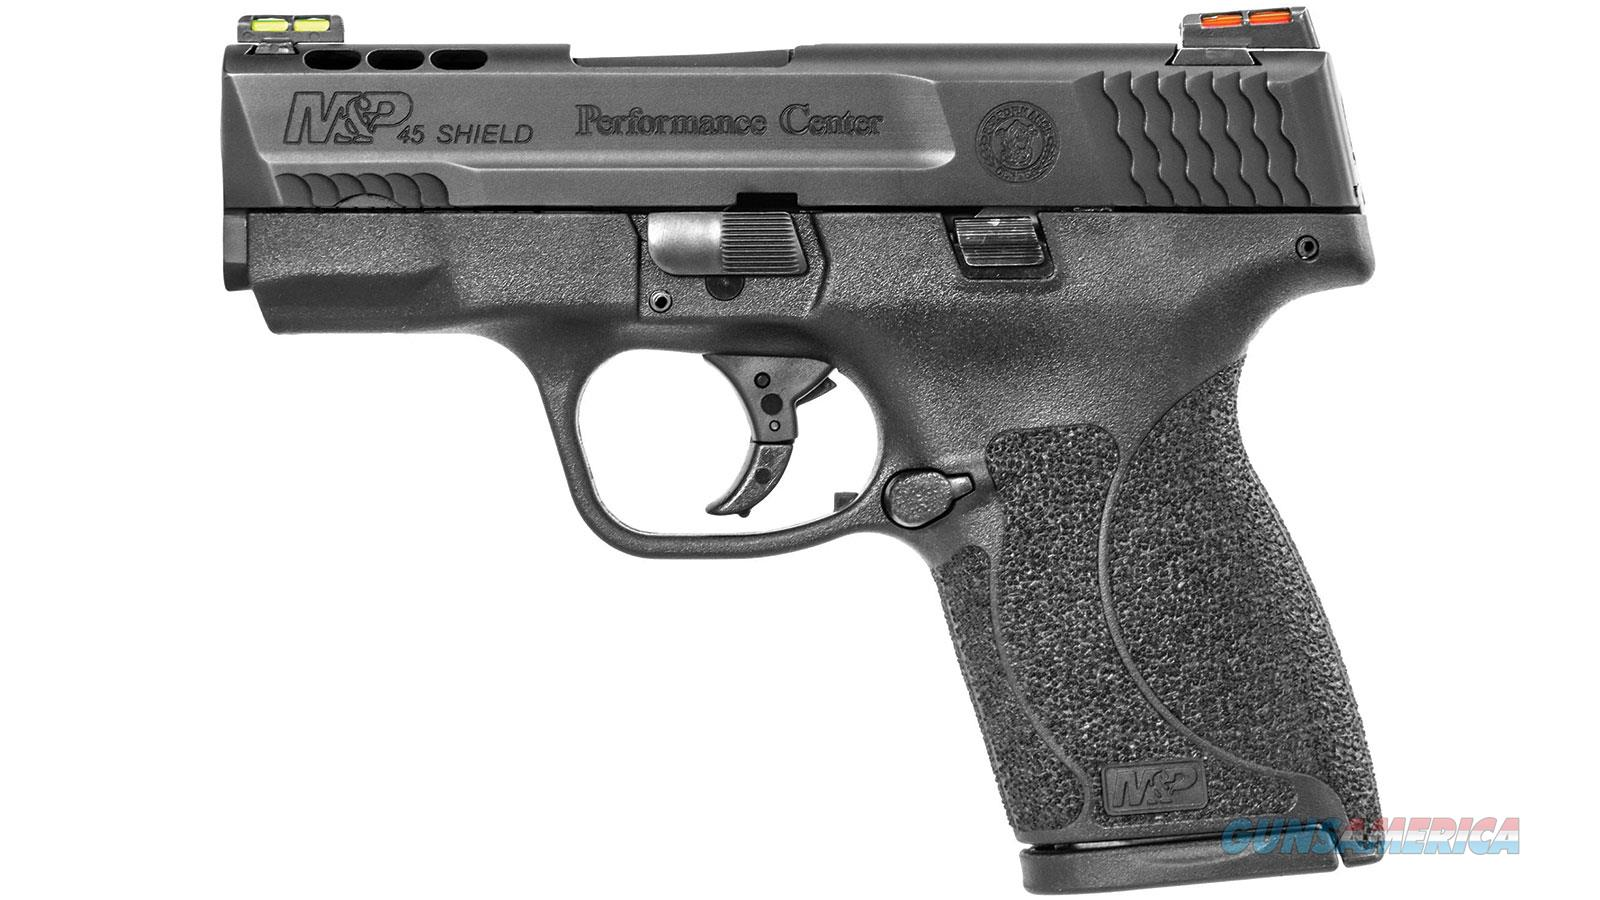 SMITH & WESSON M&P SHIELD 45ACP 3.3 PORTED FOS NO THUMB SAFE 11629  Guns > Pistols > S Misc Pistols